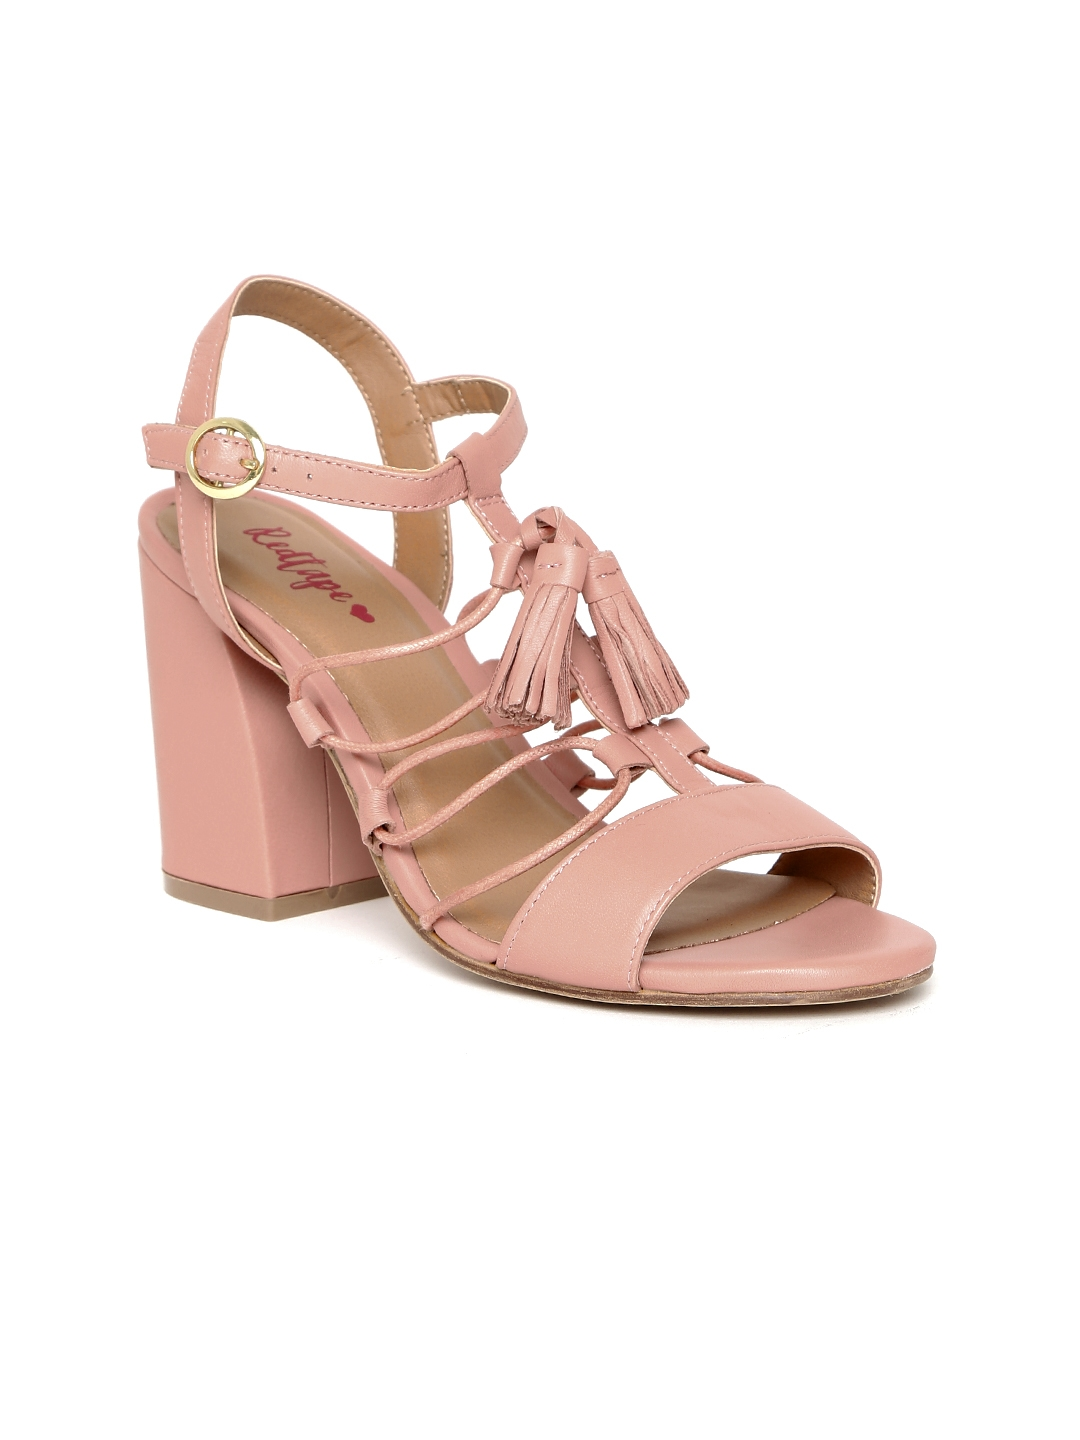 403ecb887d9f Buy Red Tape Women Dusty Pink Solid Leather Sandals - Heels for ...